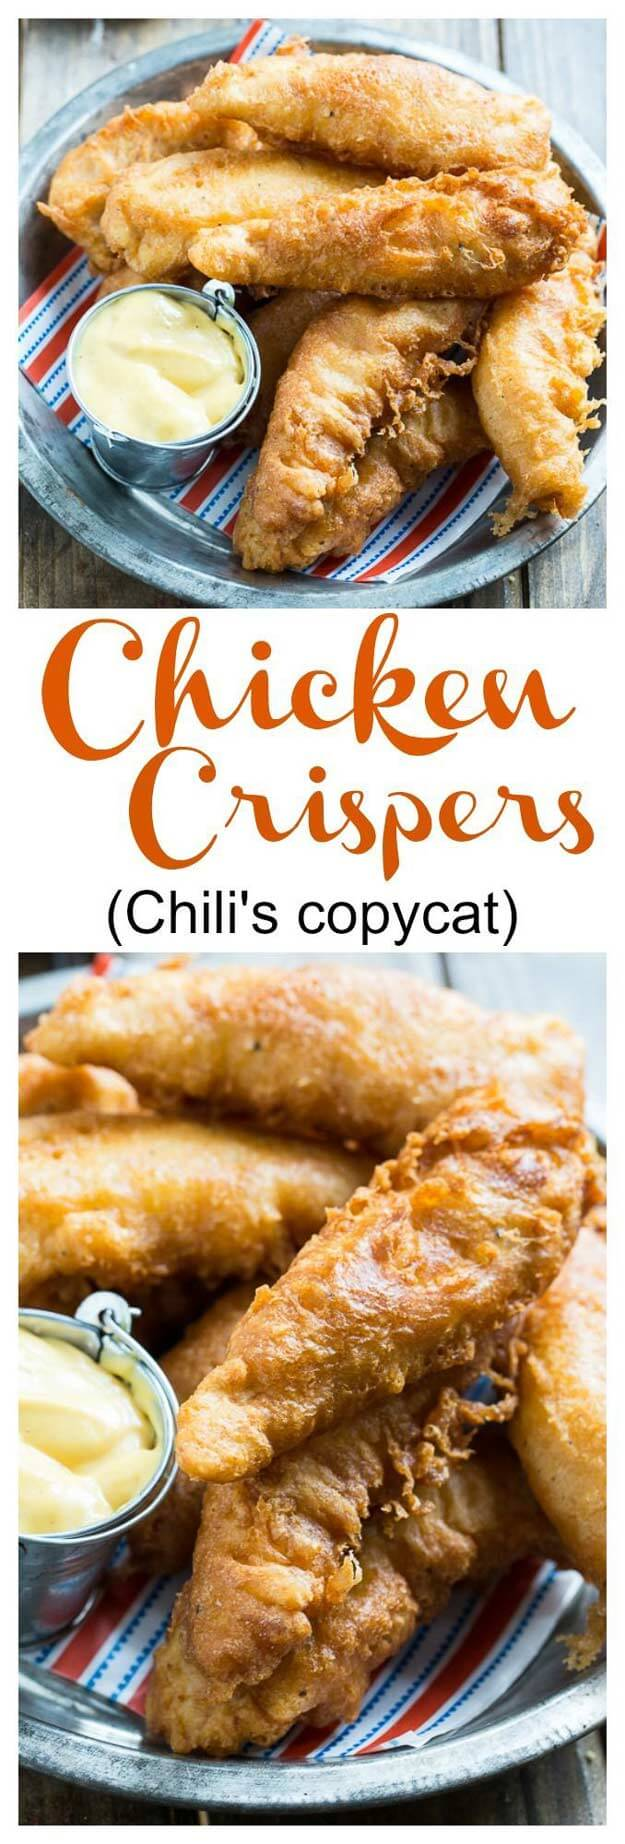 Chicken Crispers Chili's Copycat